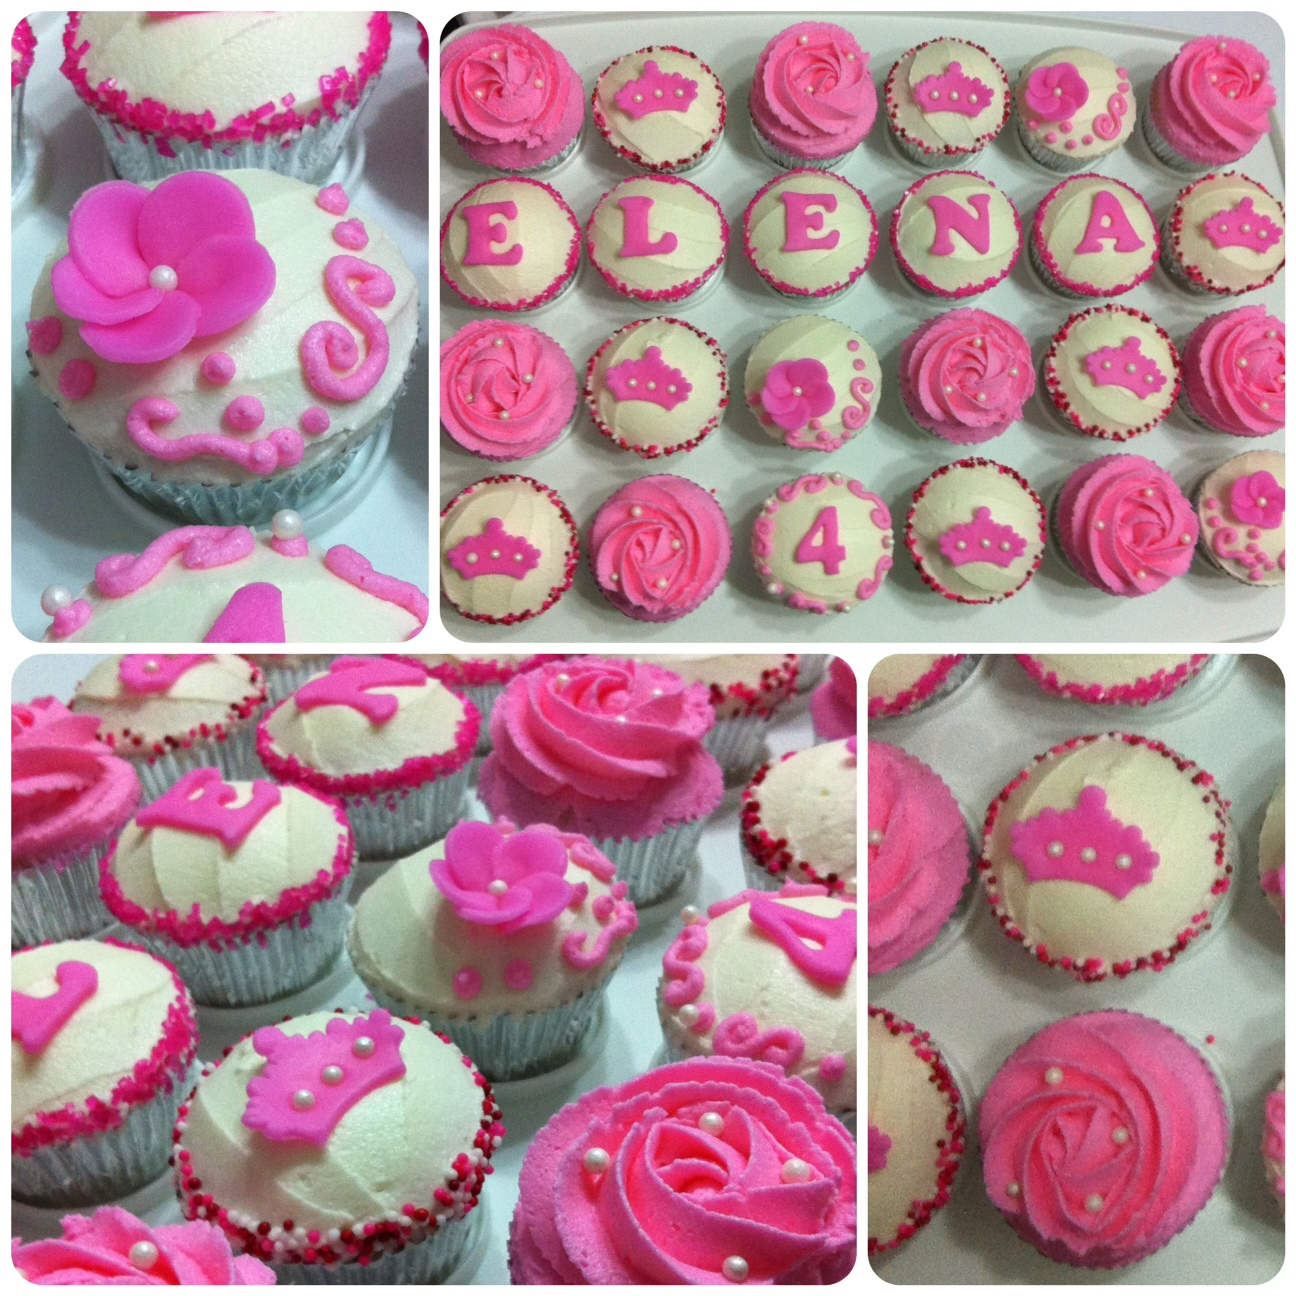 Cupcakes For Princess Cupcakes Frenzy